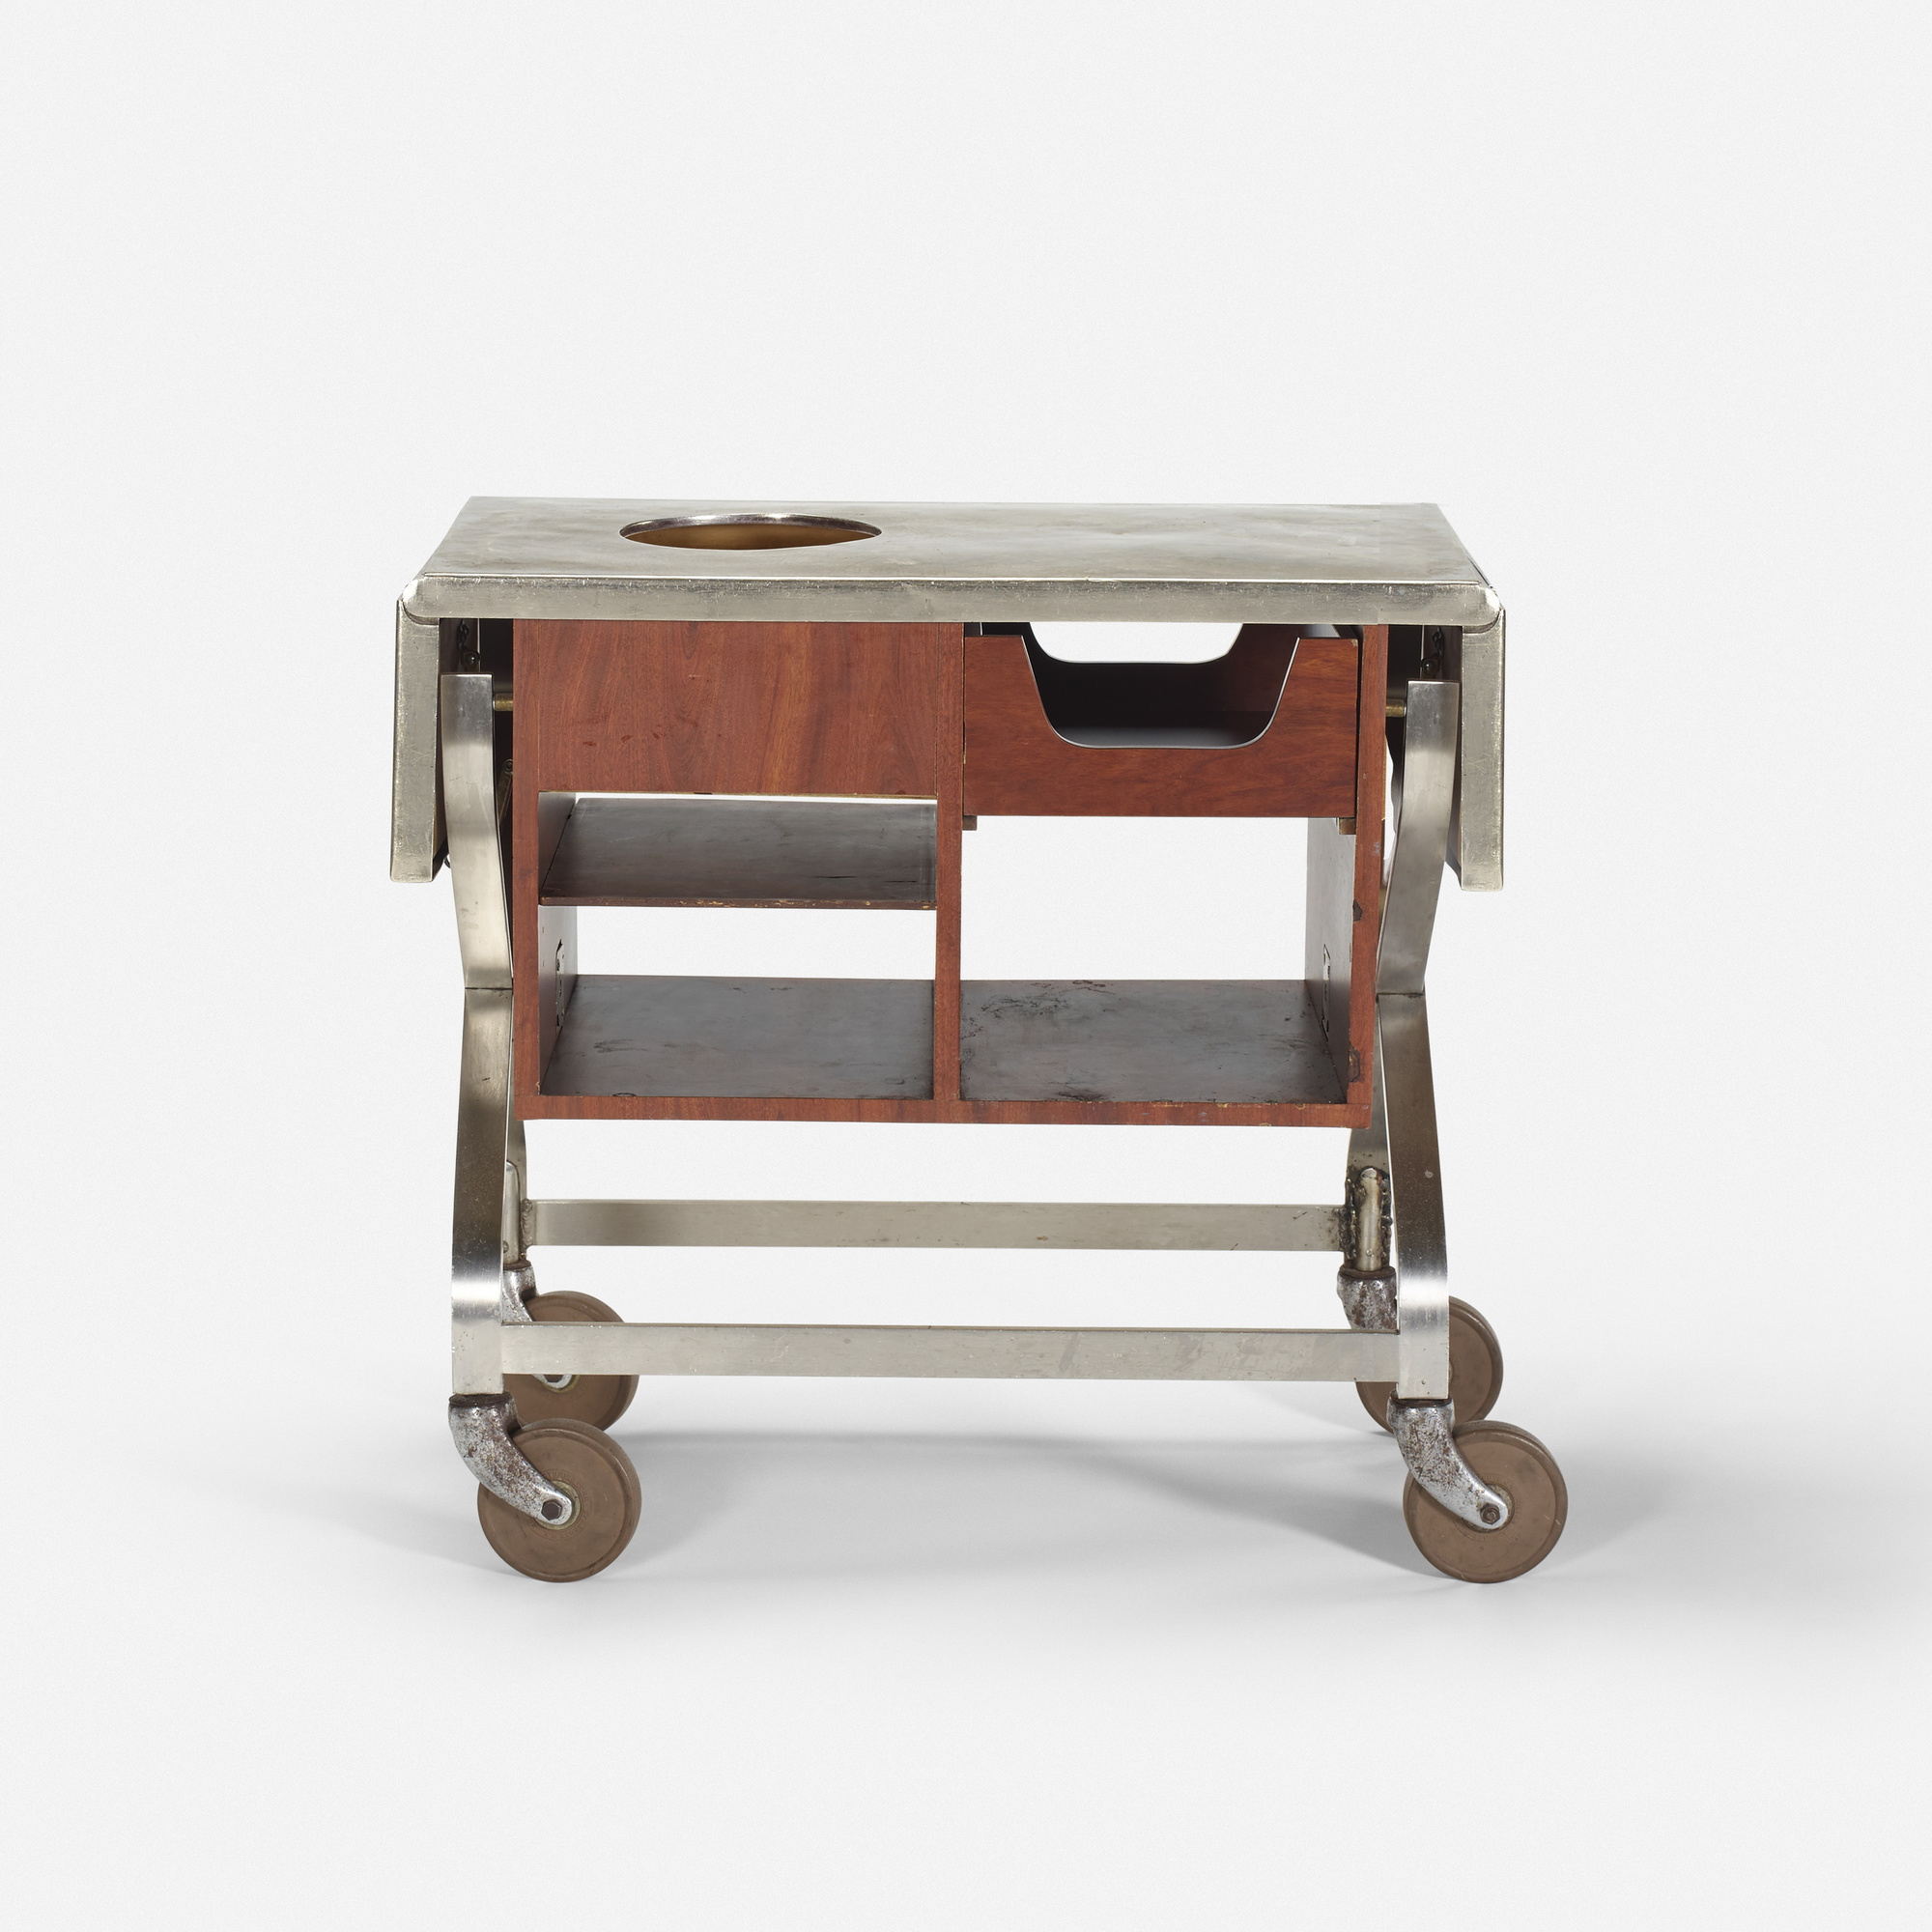 577: Garth and Ada Louise Huxtable / Serving cart from The Four Seasons (1 of 1)